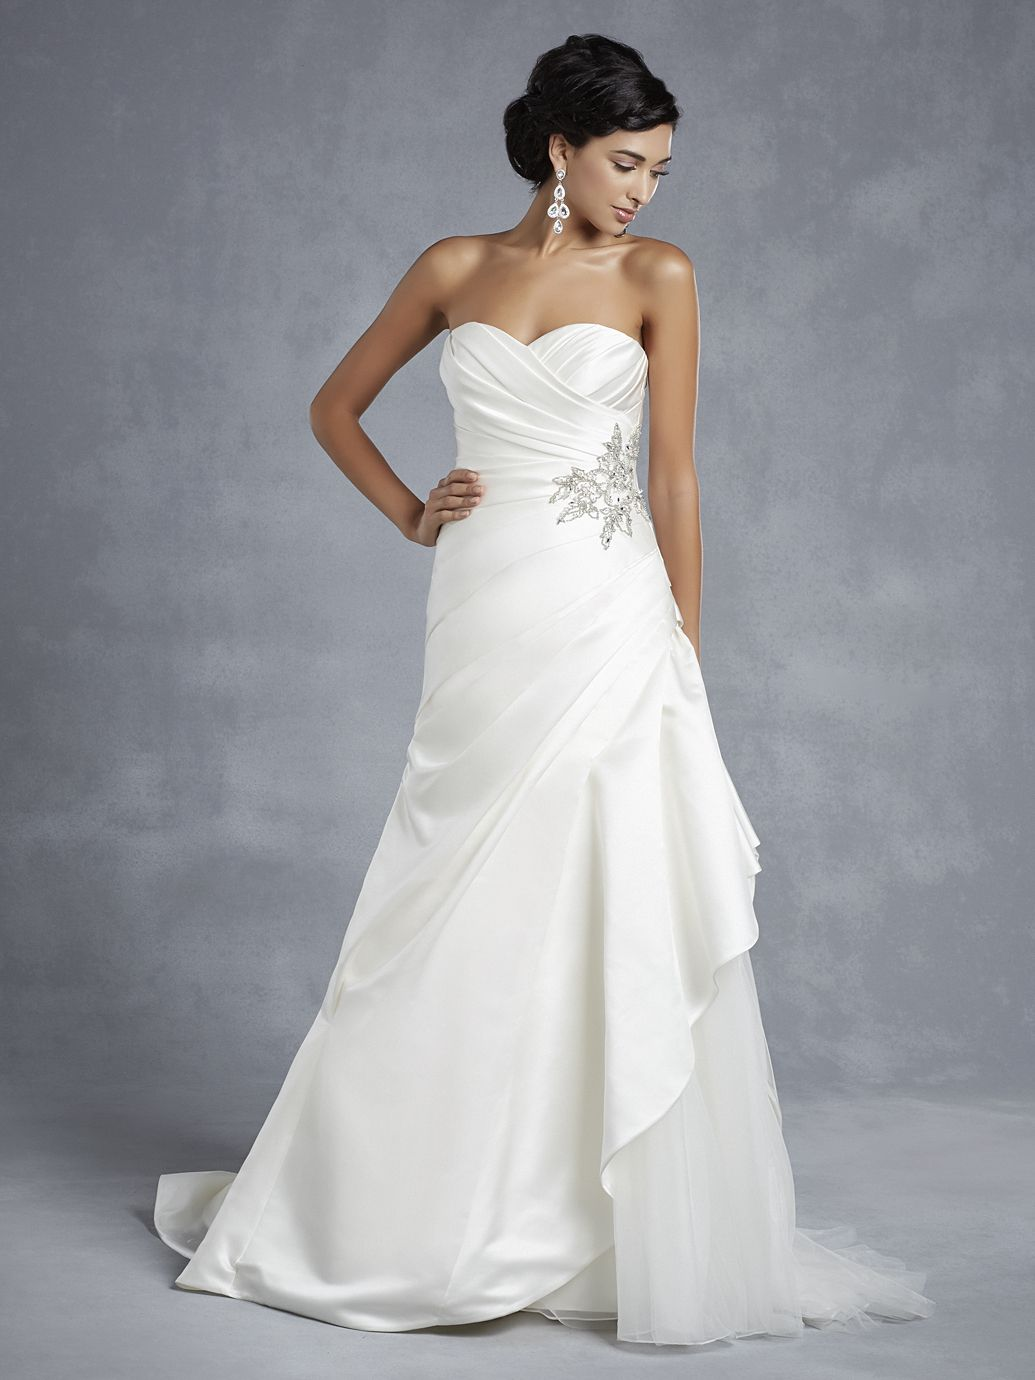 43 ENZOANI BEAUTIFUL BT1511 IVORY SZ 12 800 FORMAL OUR